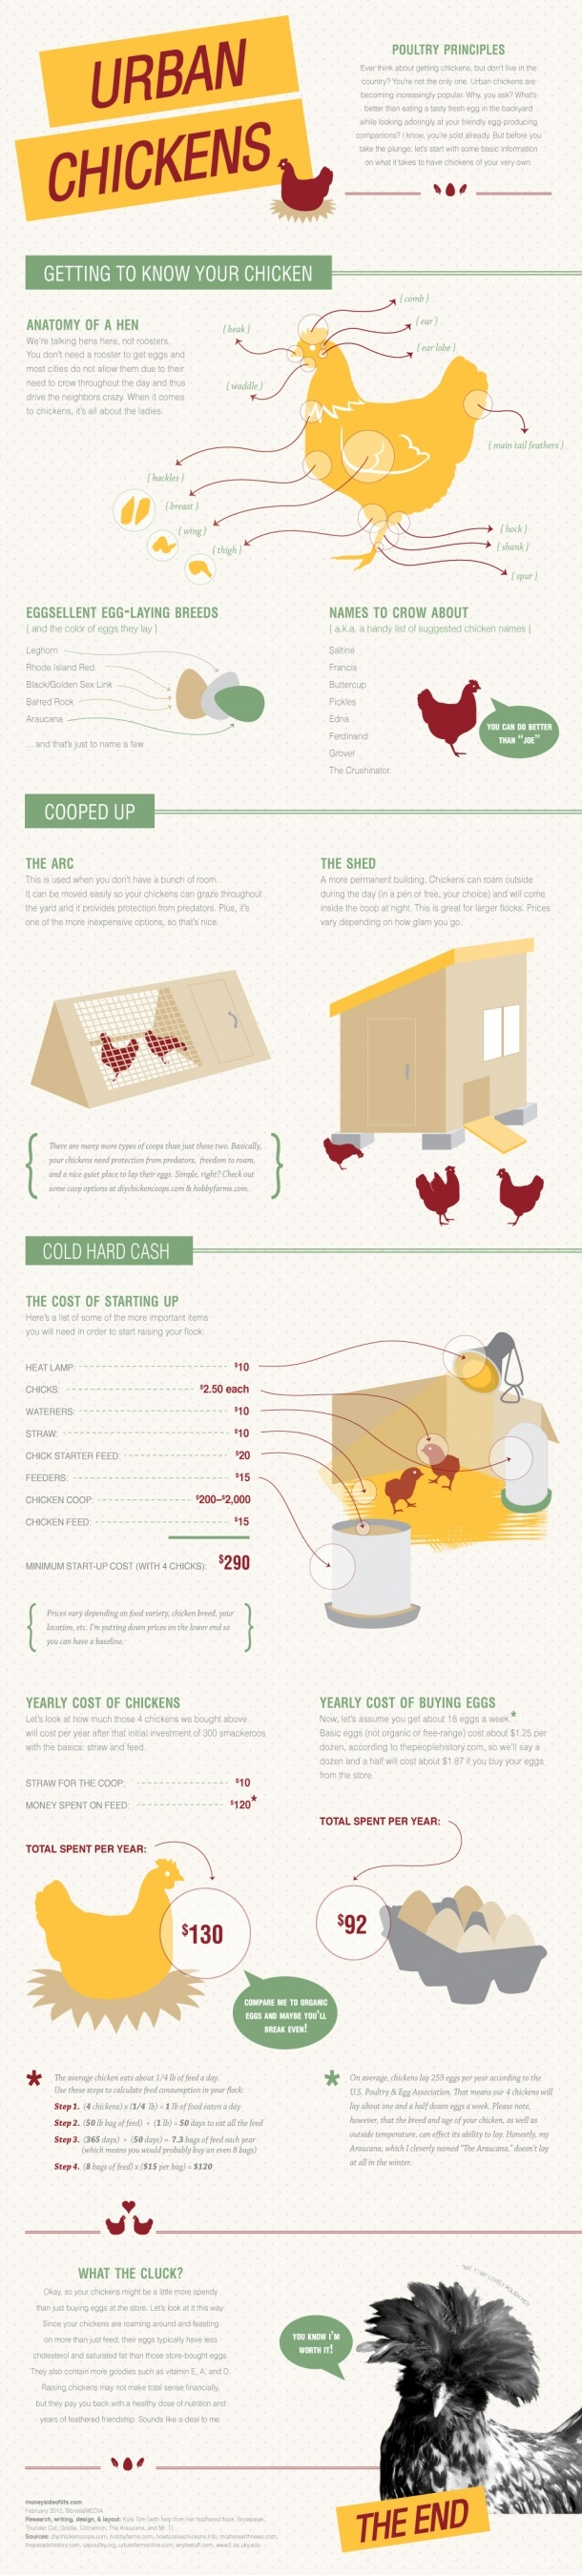 Urban Chickens: Getting To Know Your Chicken (so many people are repinning this, I feel like I should add that people have commented on my pin that they totally disagree with this infographic, and say keeping chickens is affordable and cost-effective!)